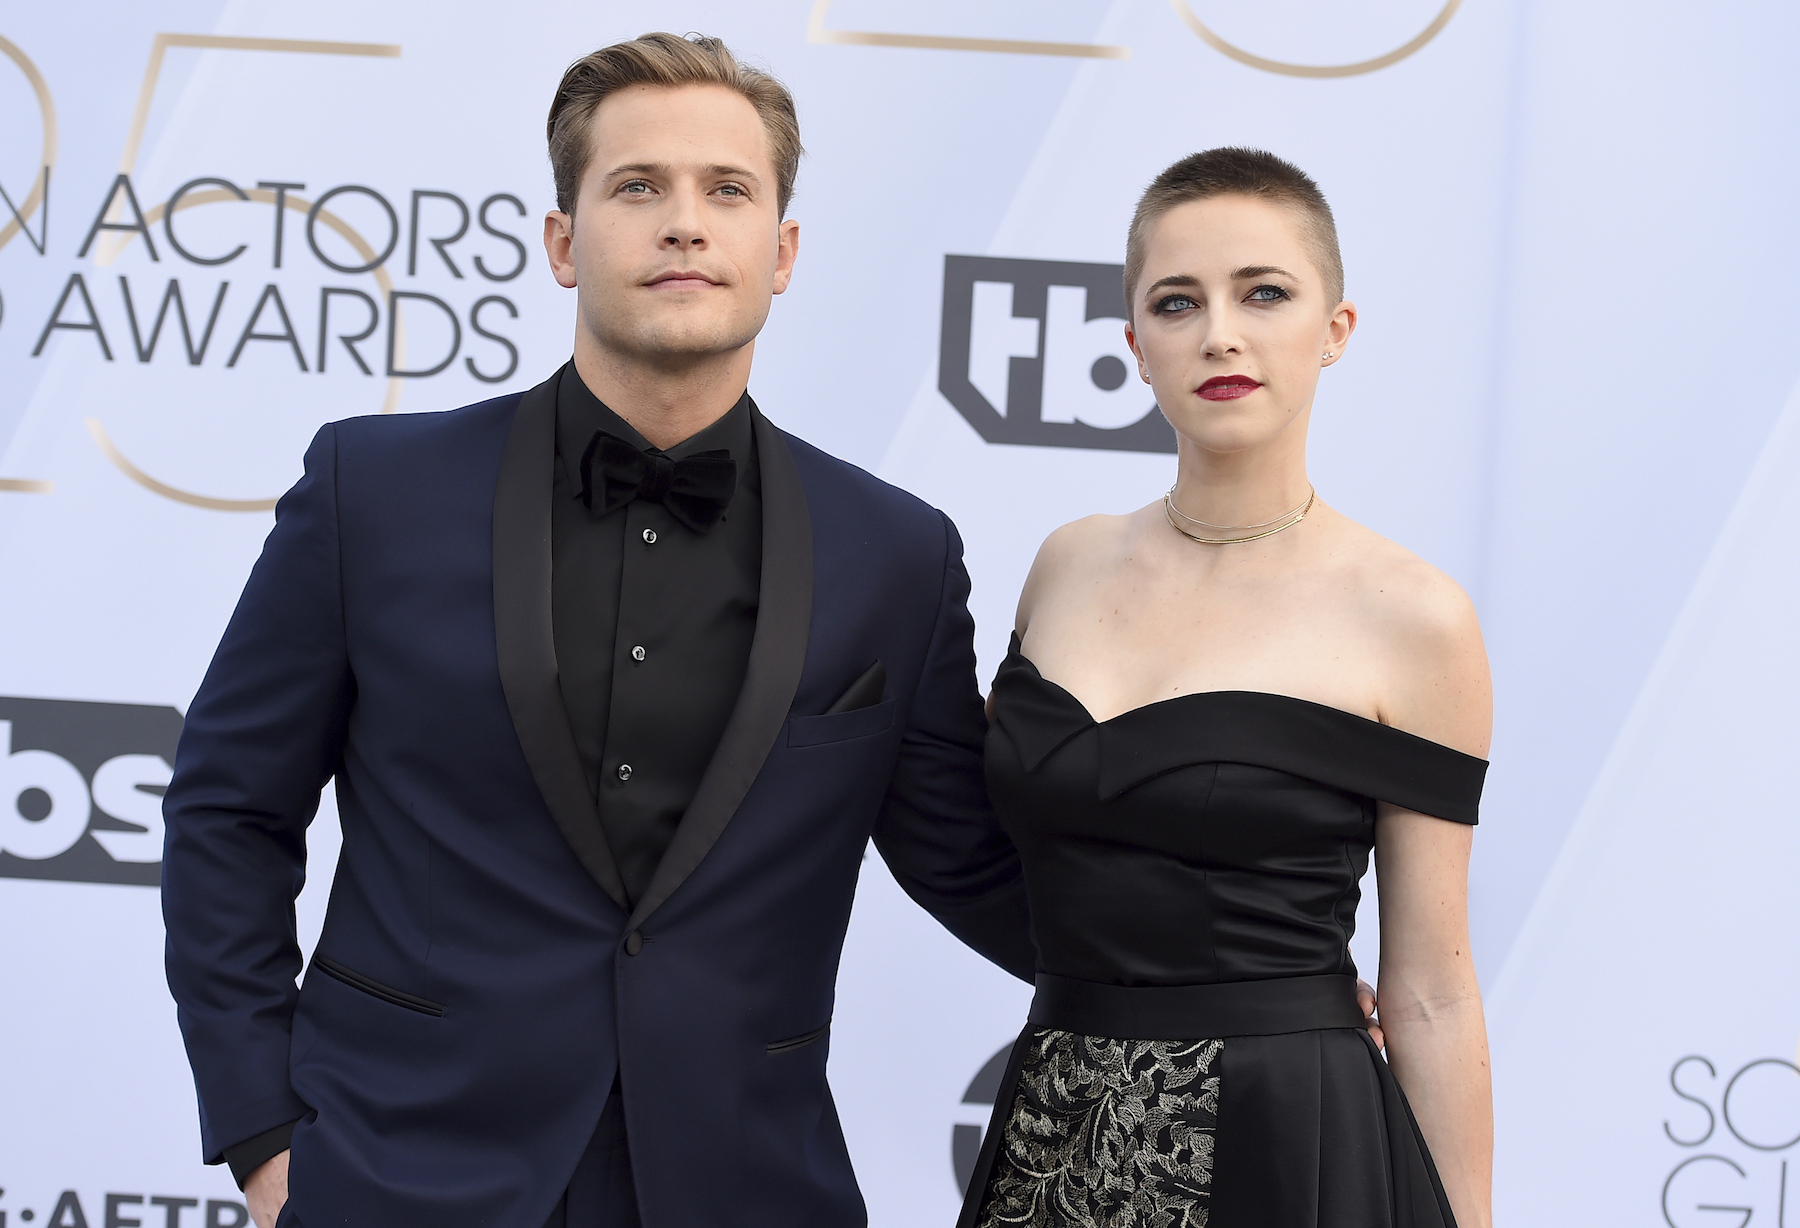 <div class='meta'><div class='origin-logo' data-origin='AP'></div><span class='caption-text' data-credit='Jordan Strauss/Invision/AP'>Wyatt Nash, left, and Aubrey Swander arrive at the 25th annual Screen Actors Guild Awards at the Shrine Auditorium & Expo Hall on Sunday, Jan. 27, 2019, in Los Angeles.</span></div>